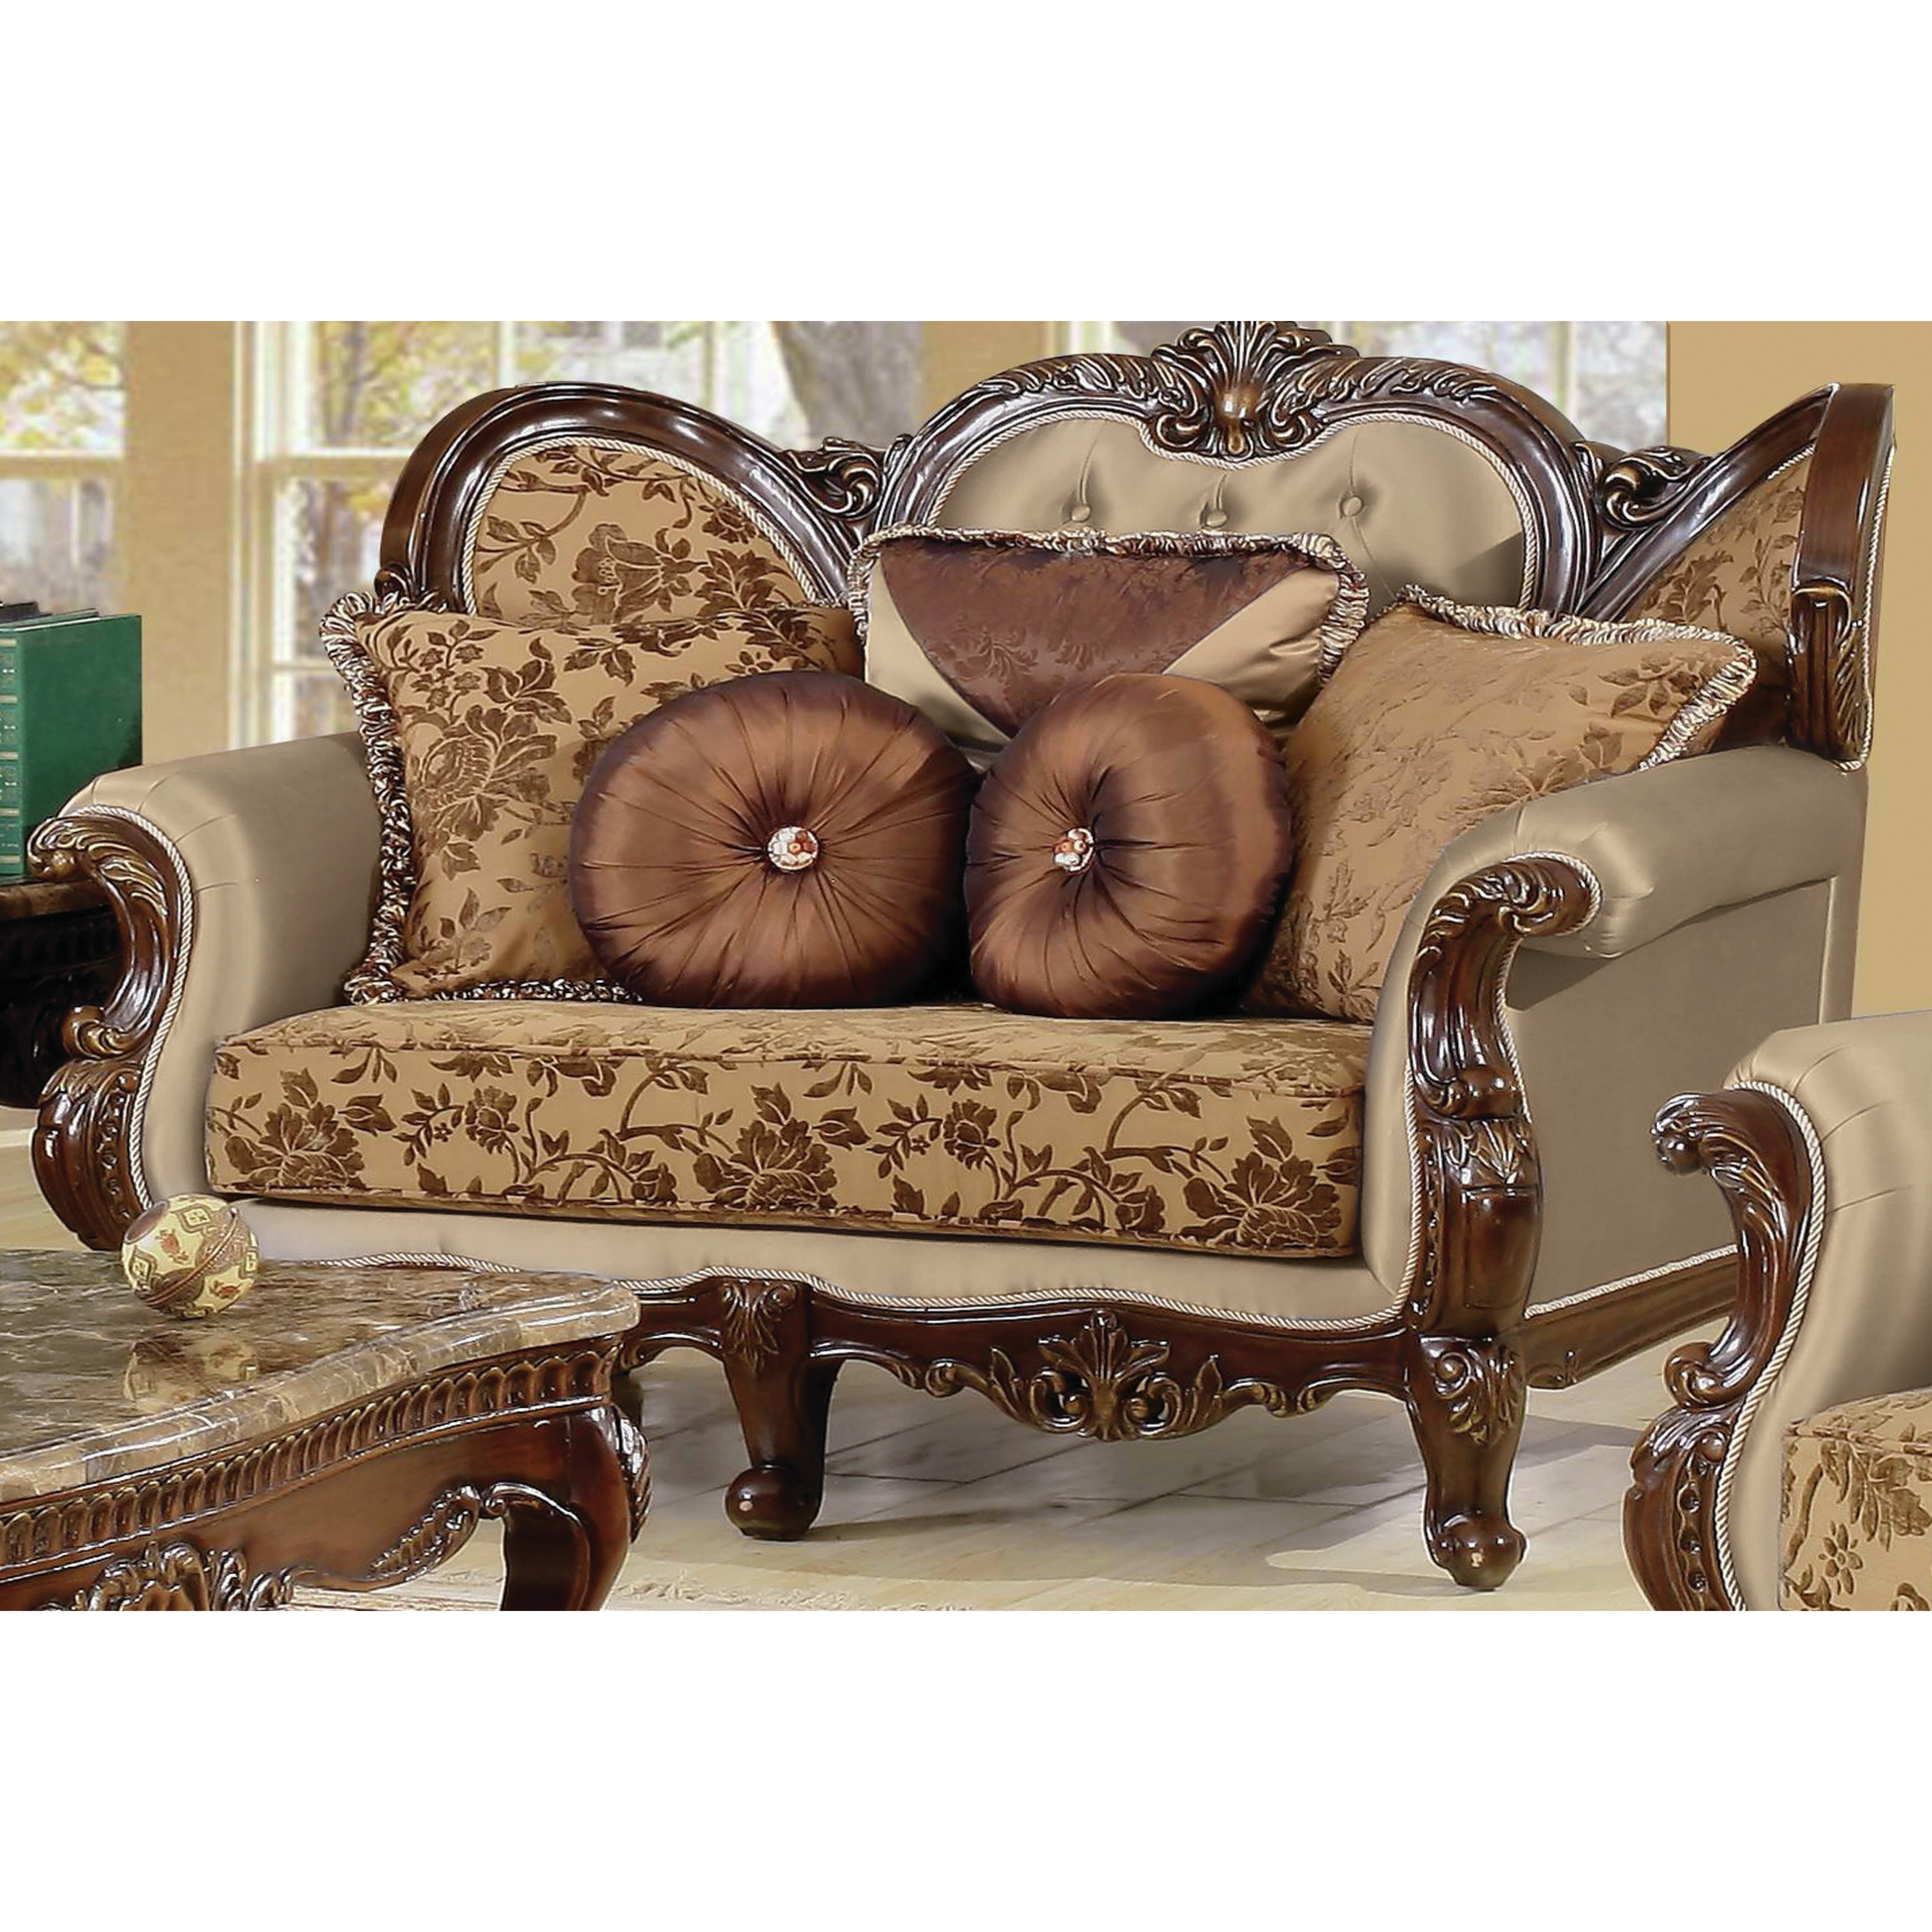 Three Piece Living Room Set Bestmasterfurniture Jenna 3 Piece Traditional Living Room Set